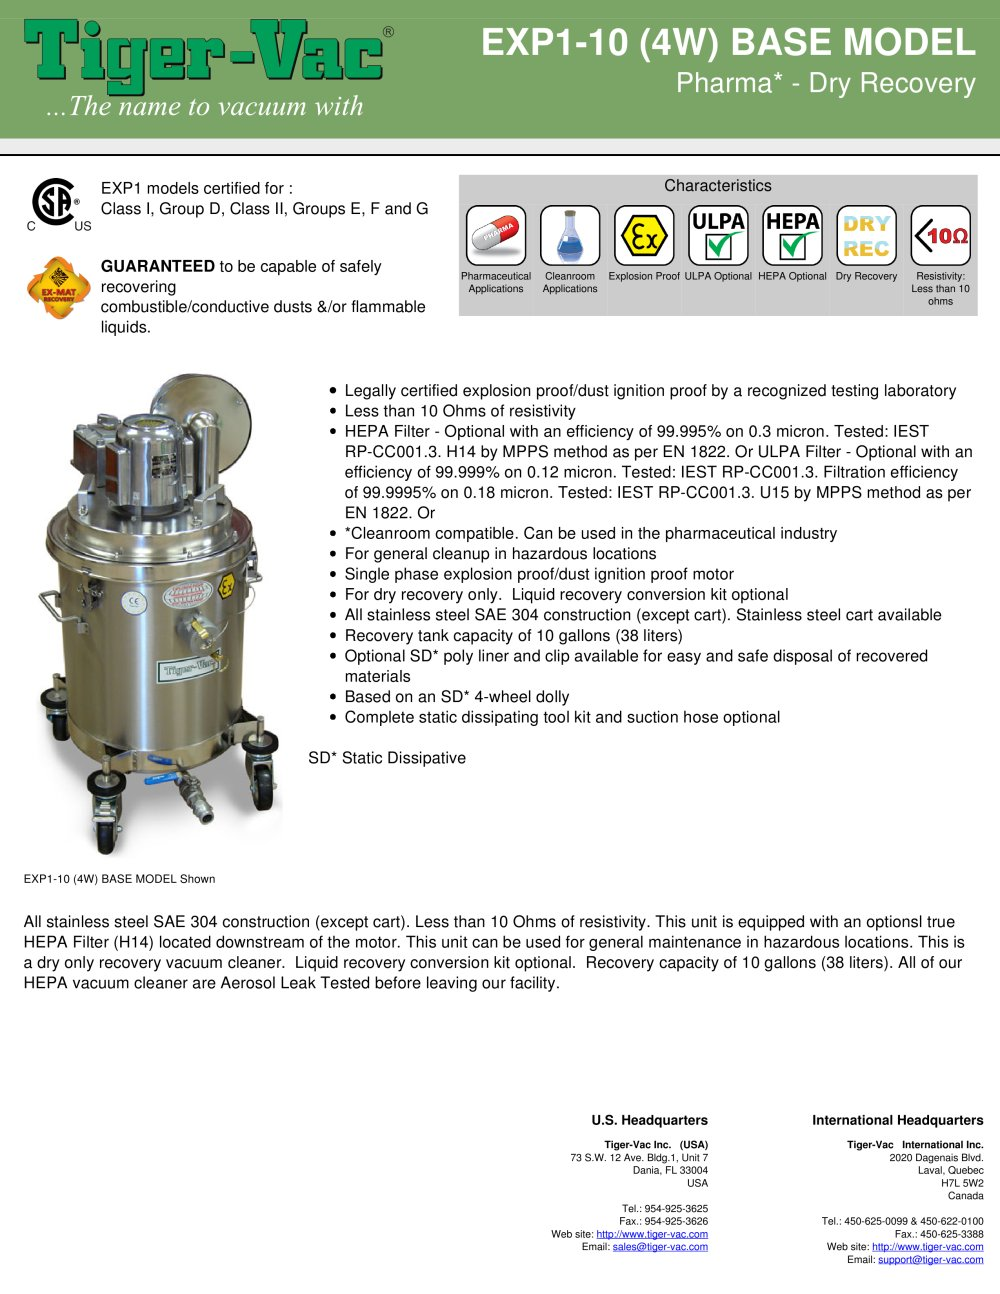 EXP1-10 (4W) BASE MODEL - 1 / 3 Pages